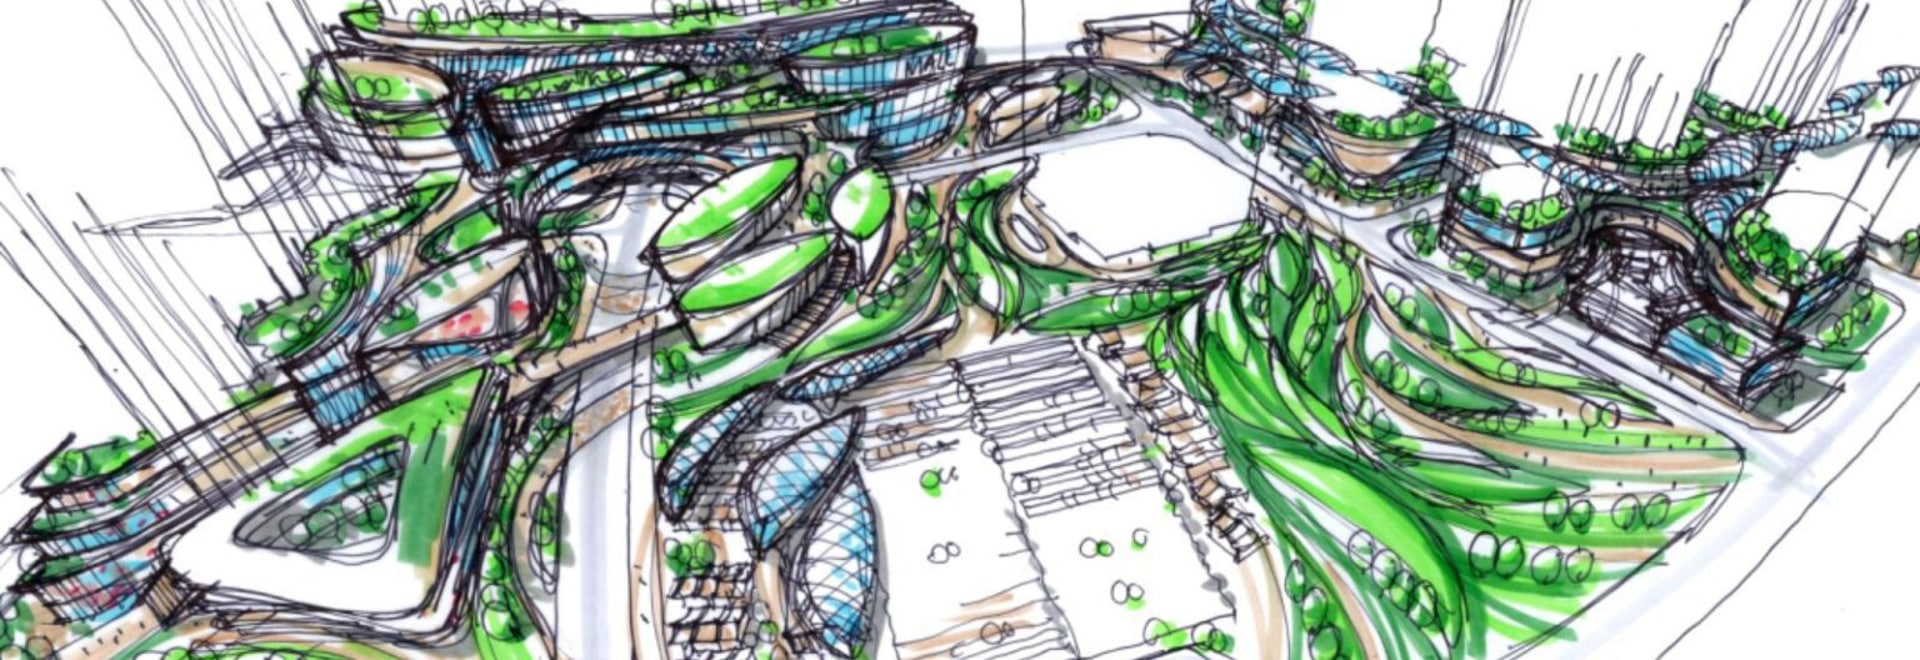 Lead8 wins International Urban Renewal competition